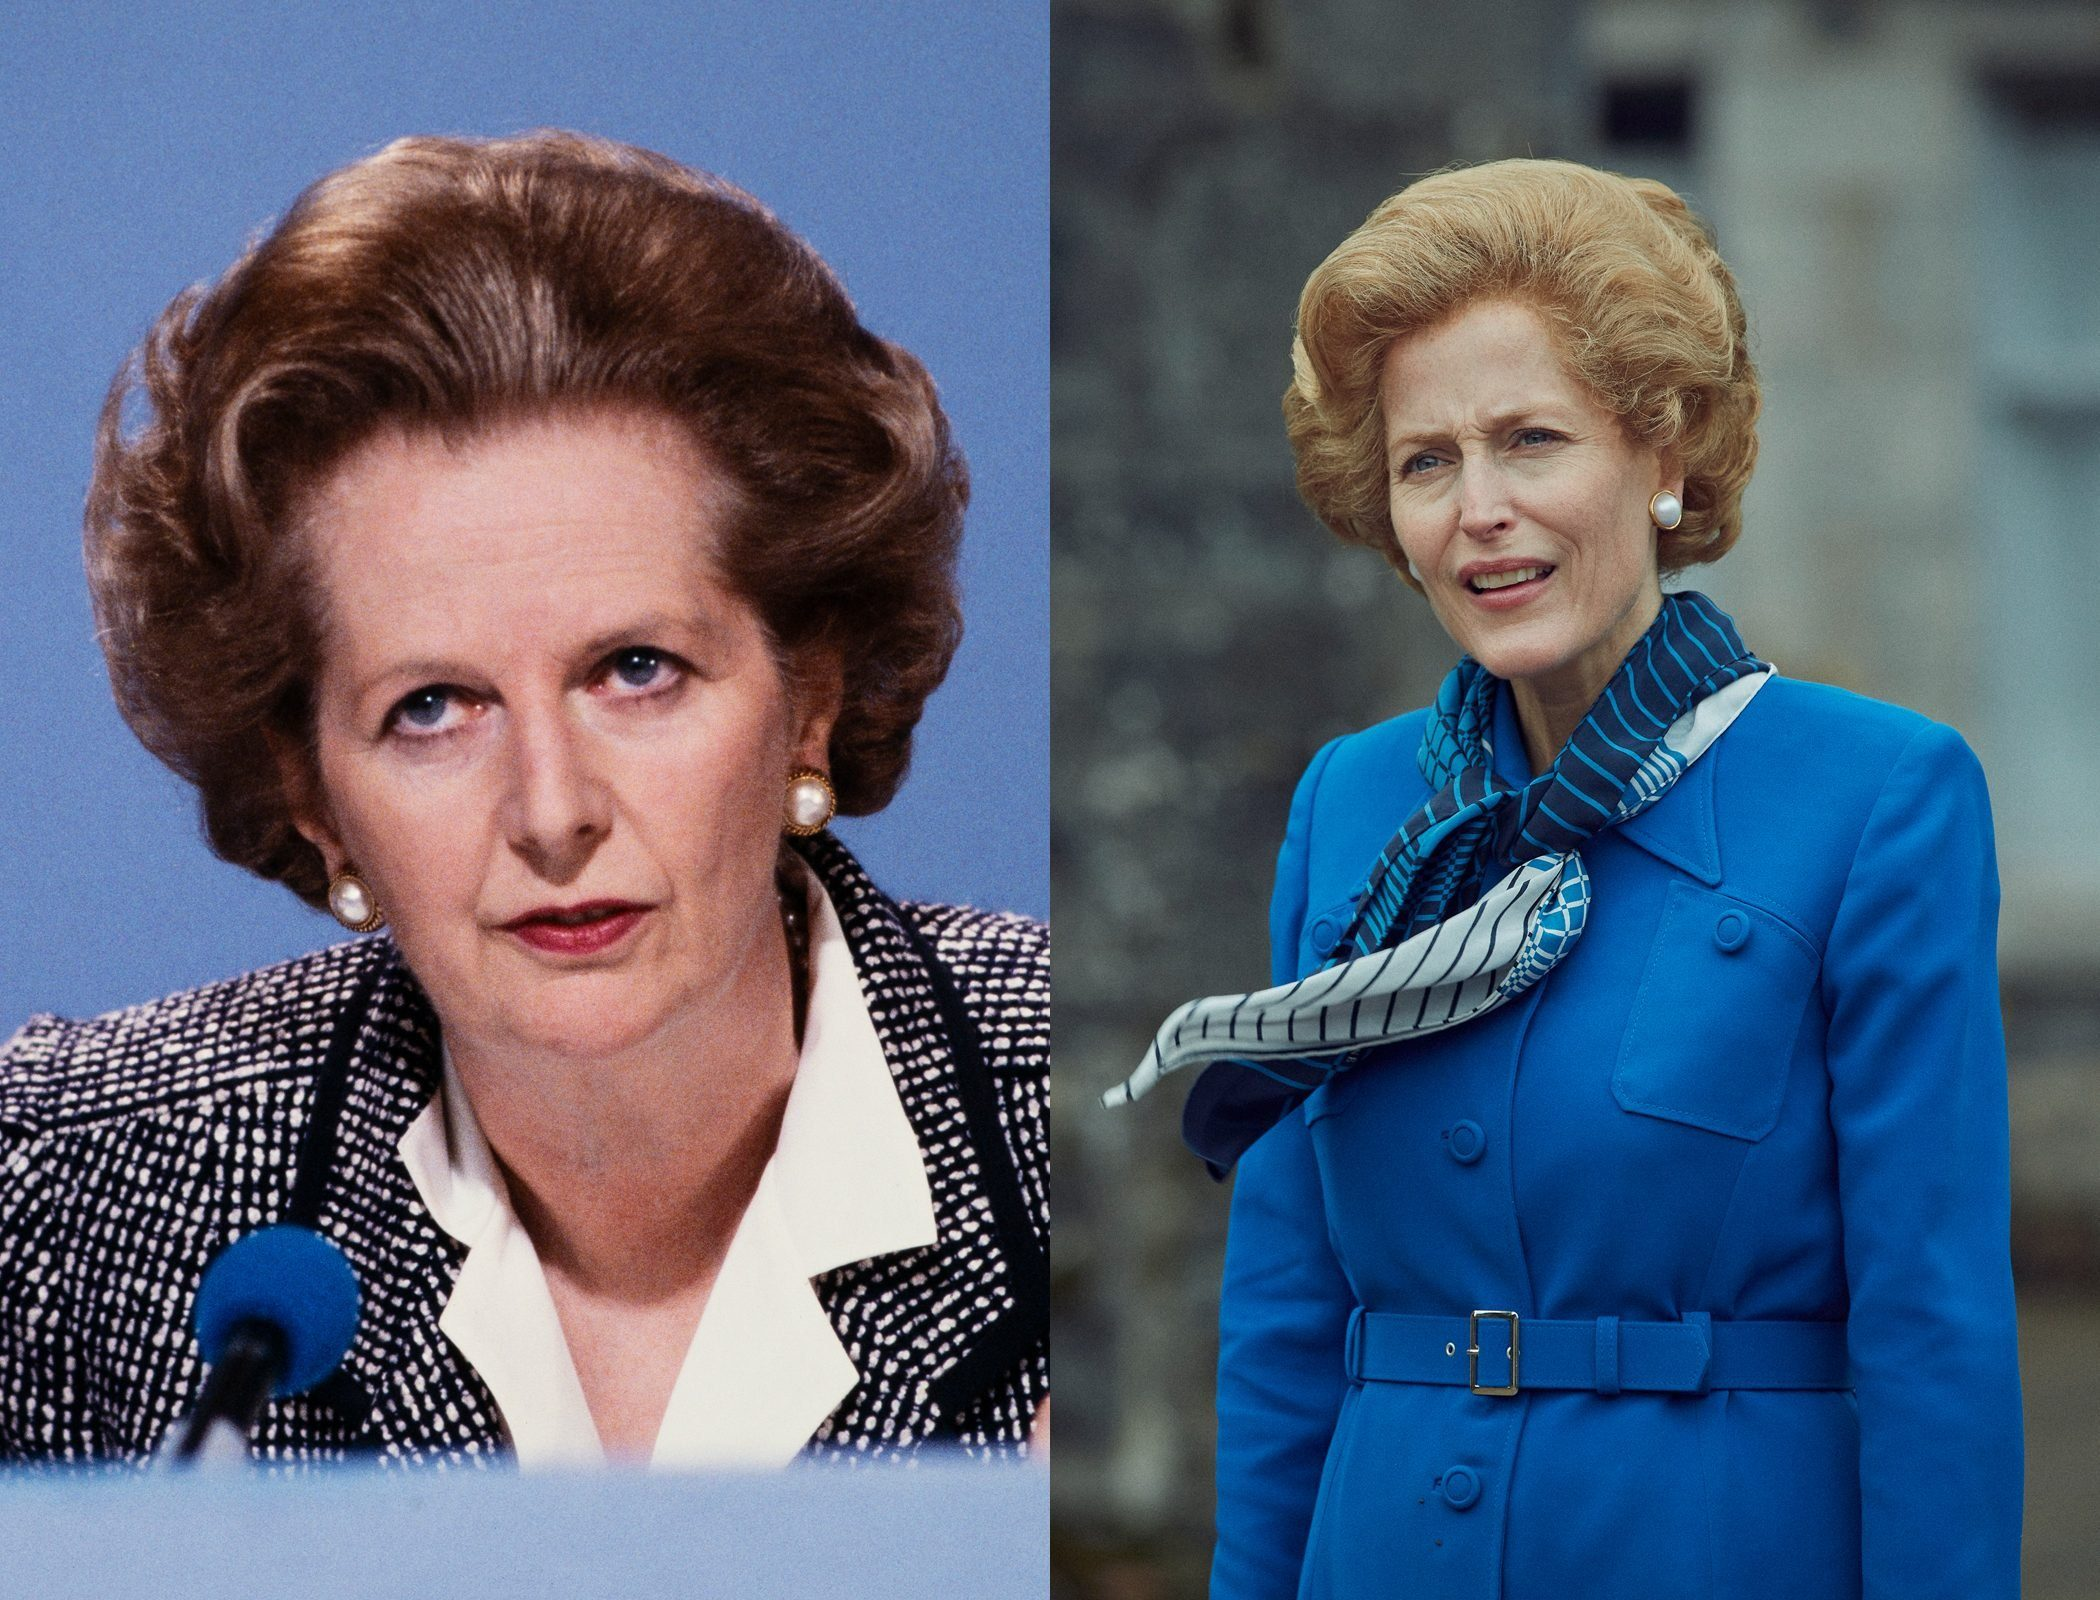 Prime Minister Margaret Thatcher on The Crown